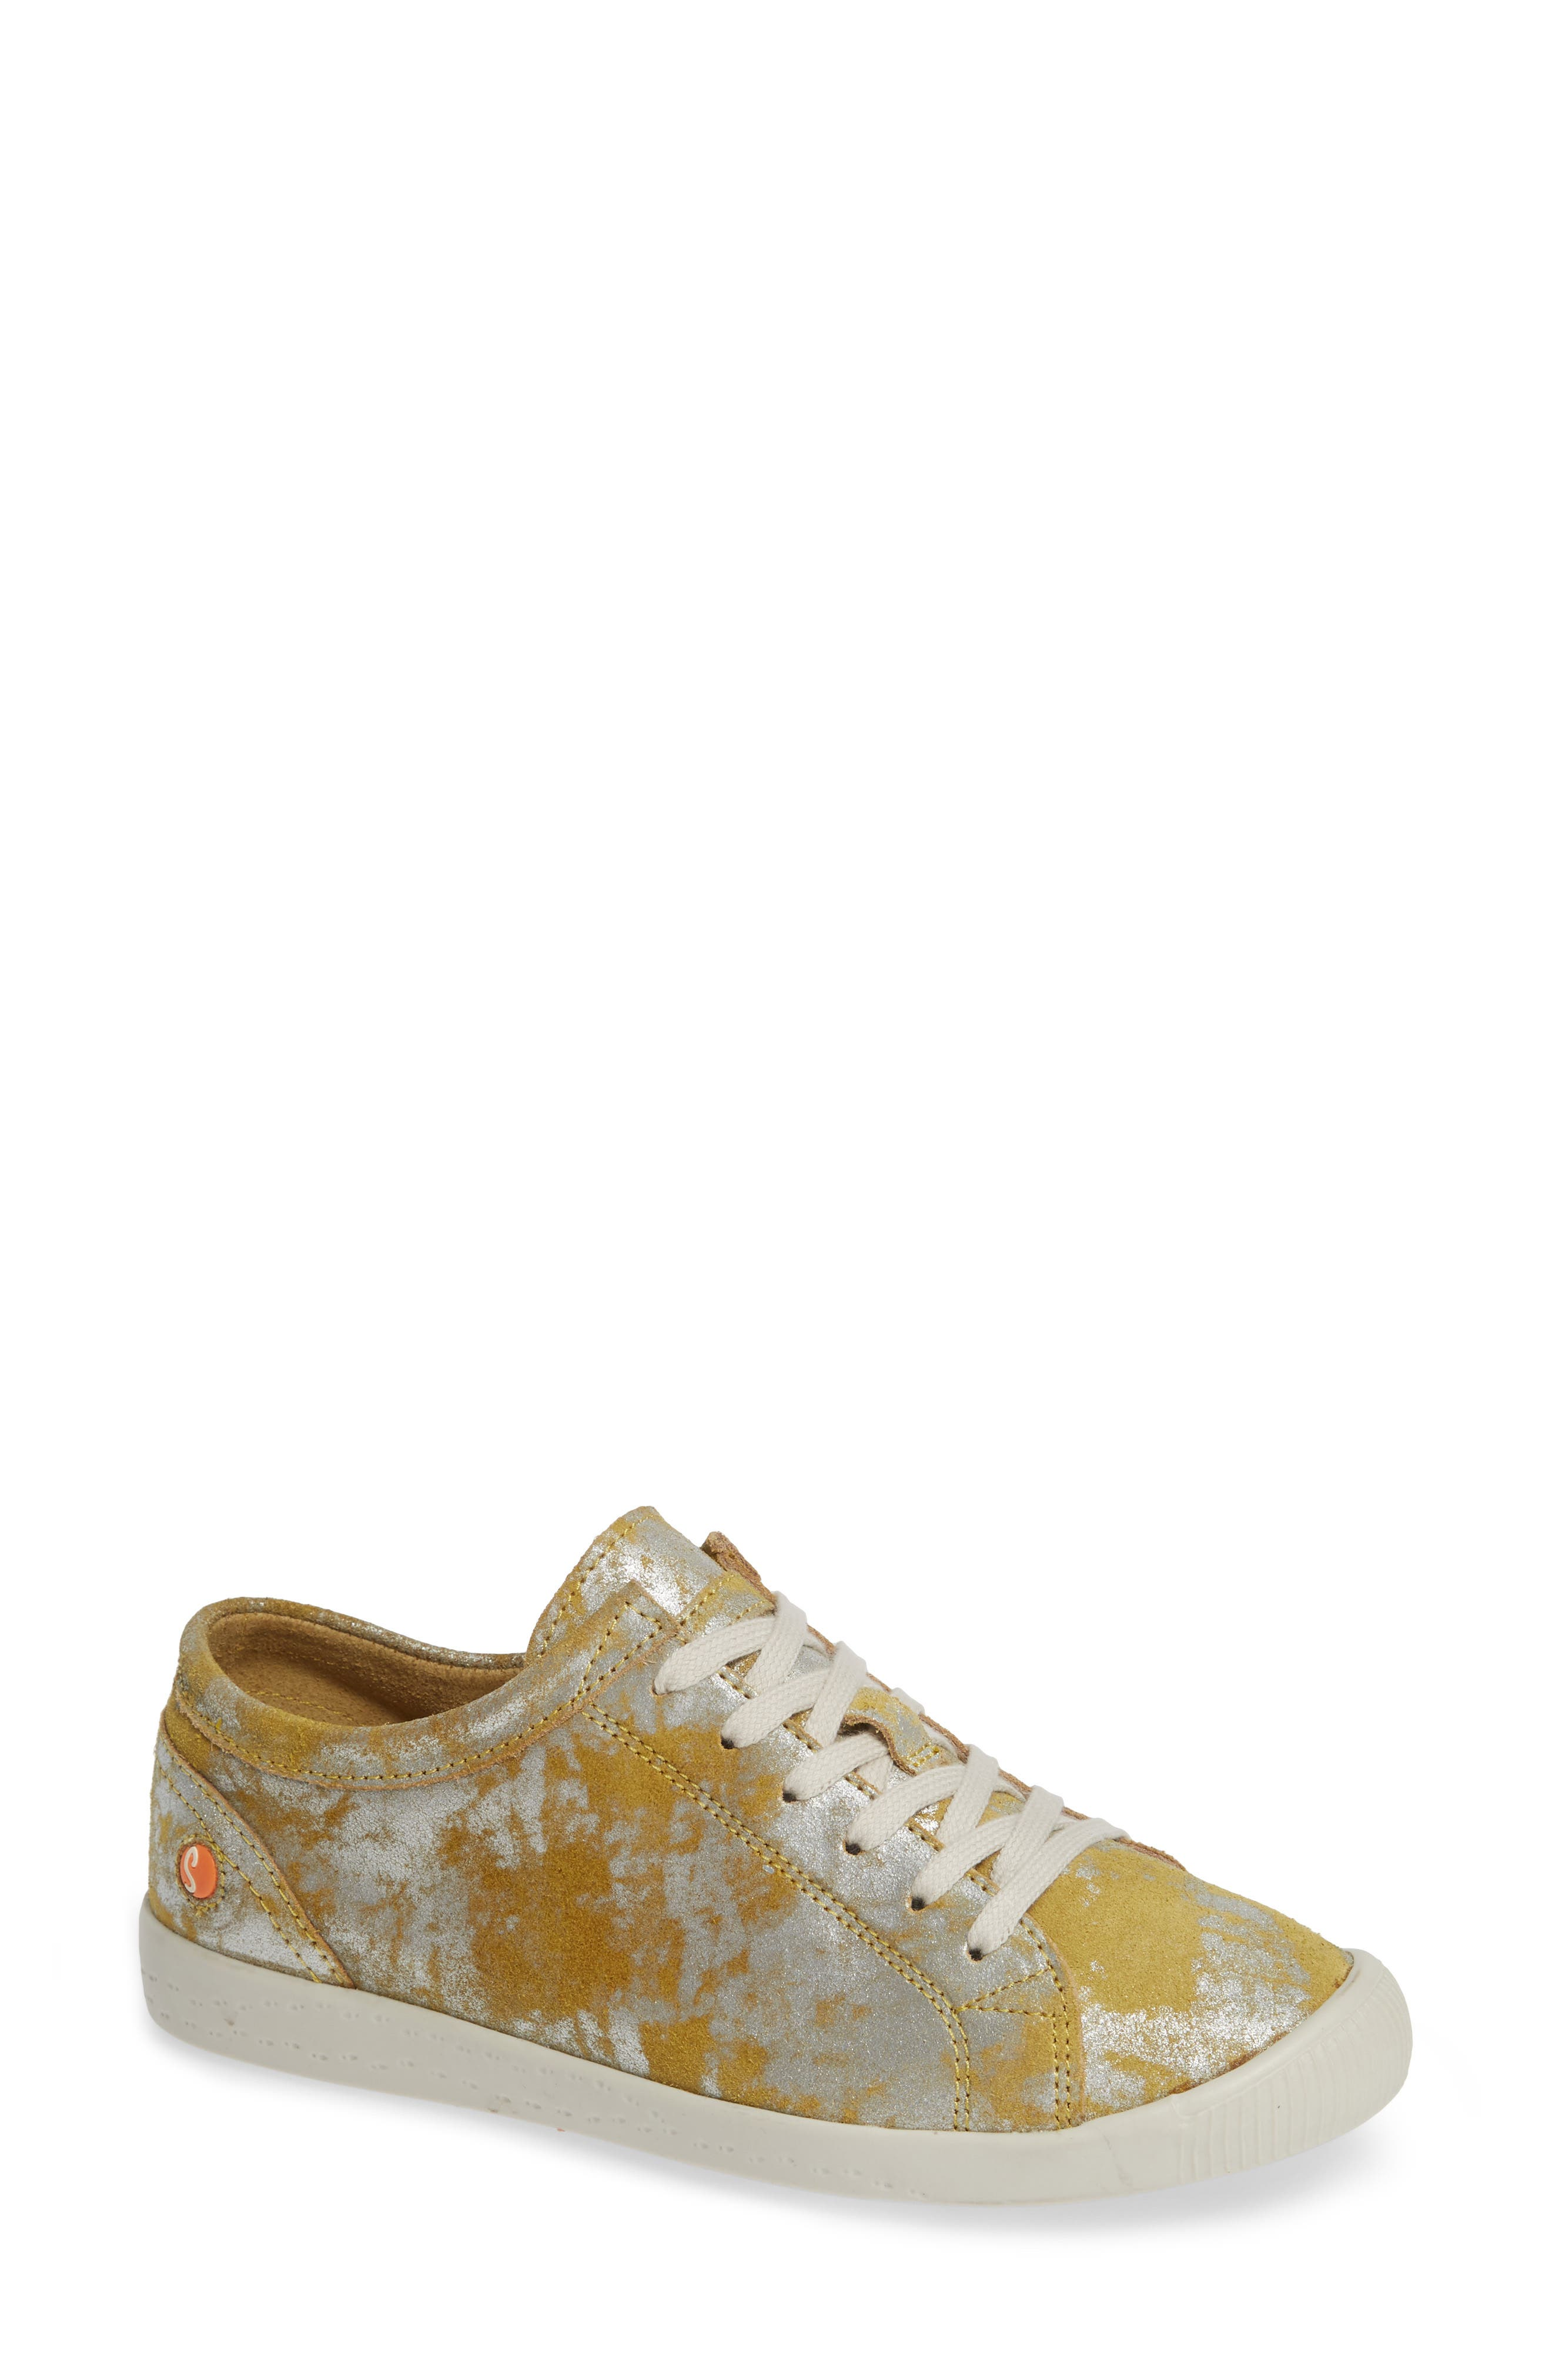 Softinos By Fly London Isla Distressed Sneaker - Yellow